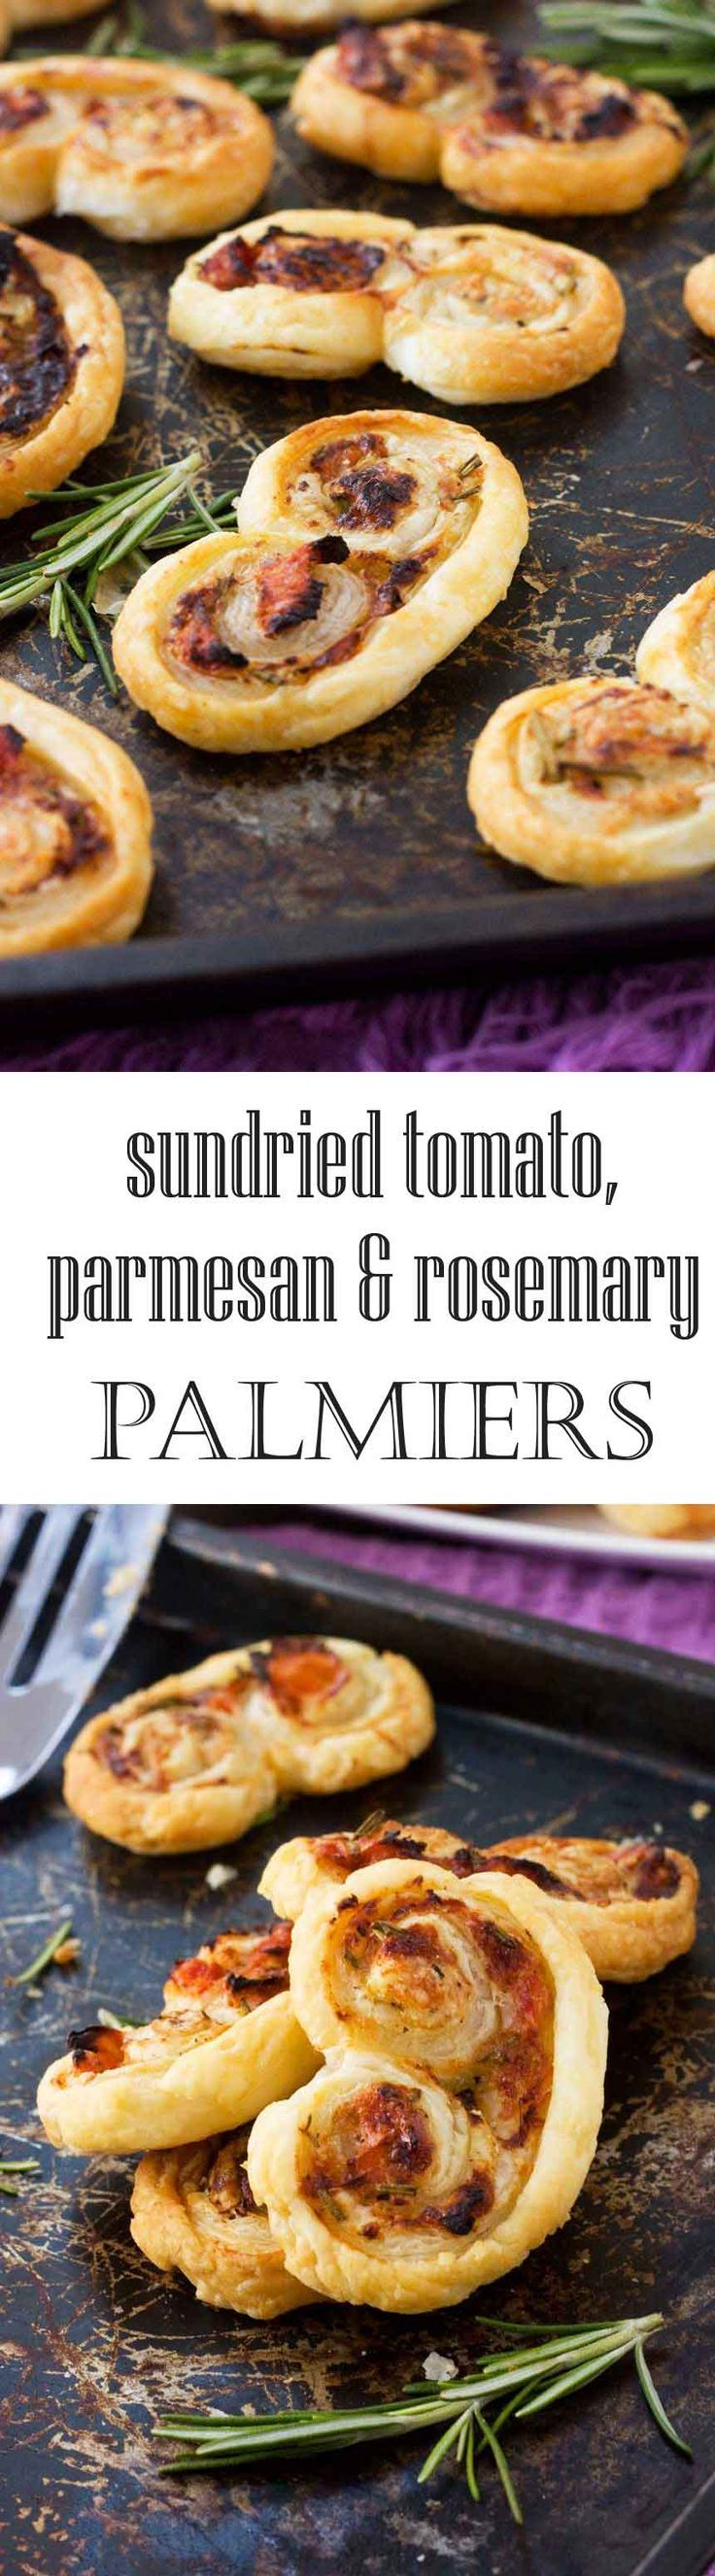 Sun-dried tomato, parmesan & rosemary palmiers | Recipe ...